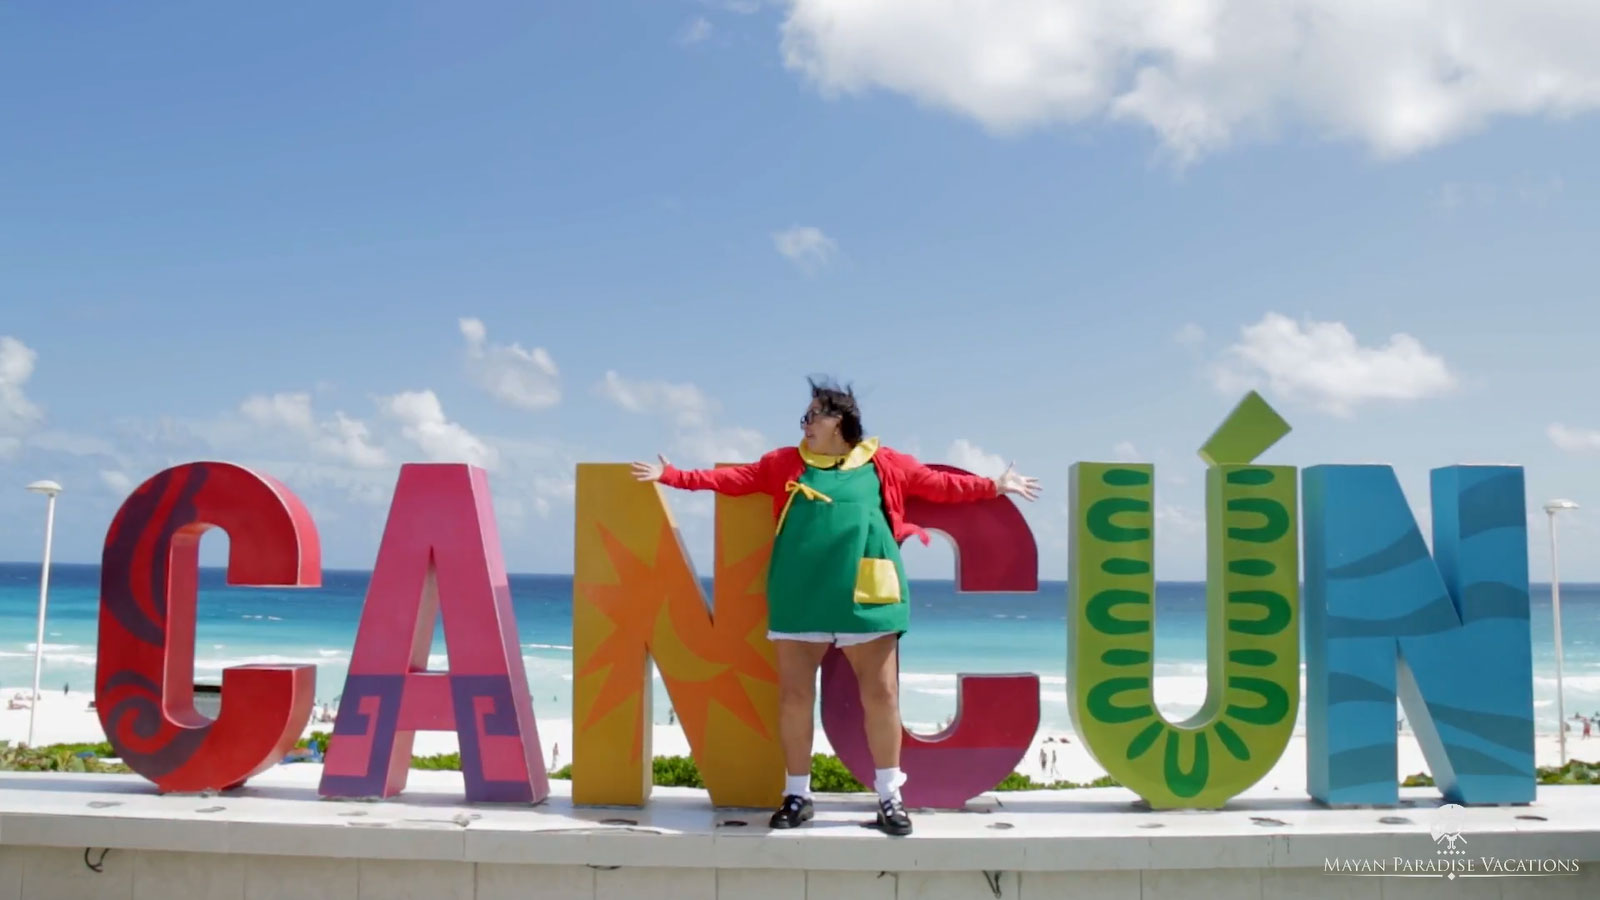 Mayan paradise vacations y la chilindrina